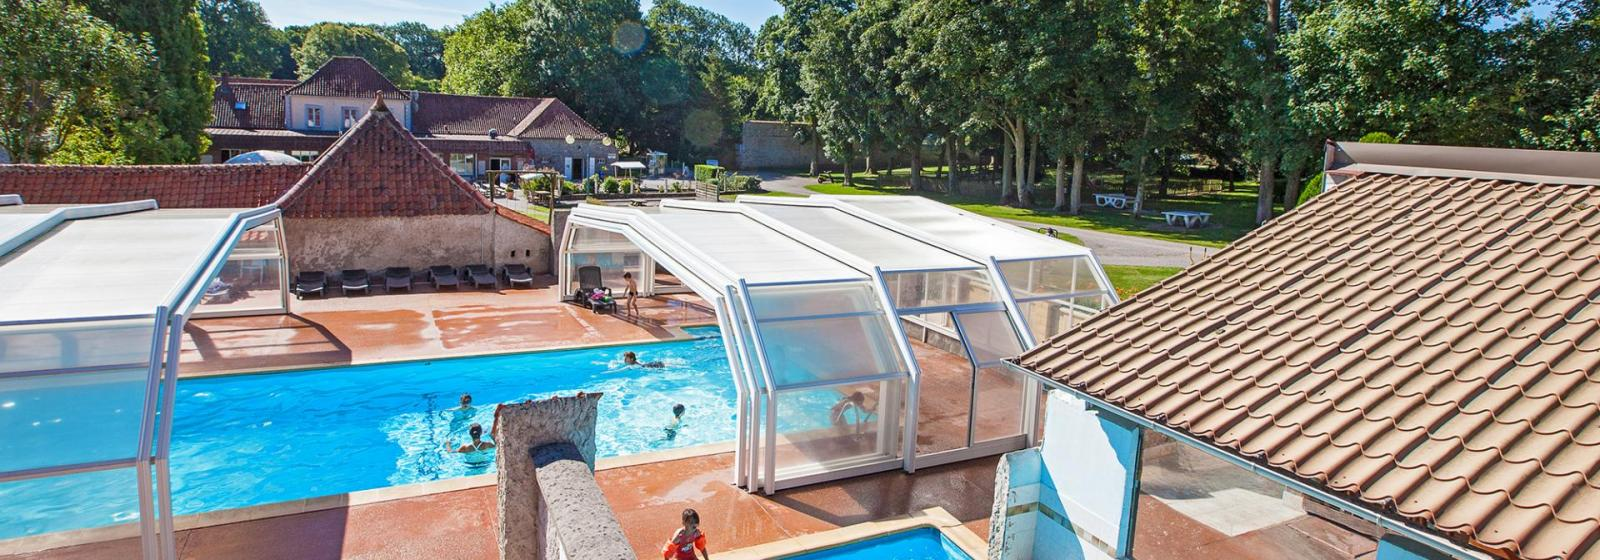 Covered pool at a Calais campground